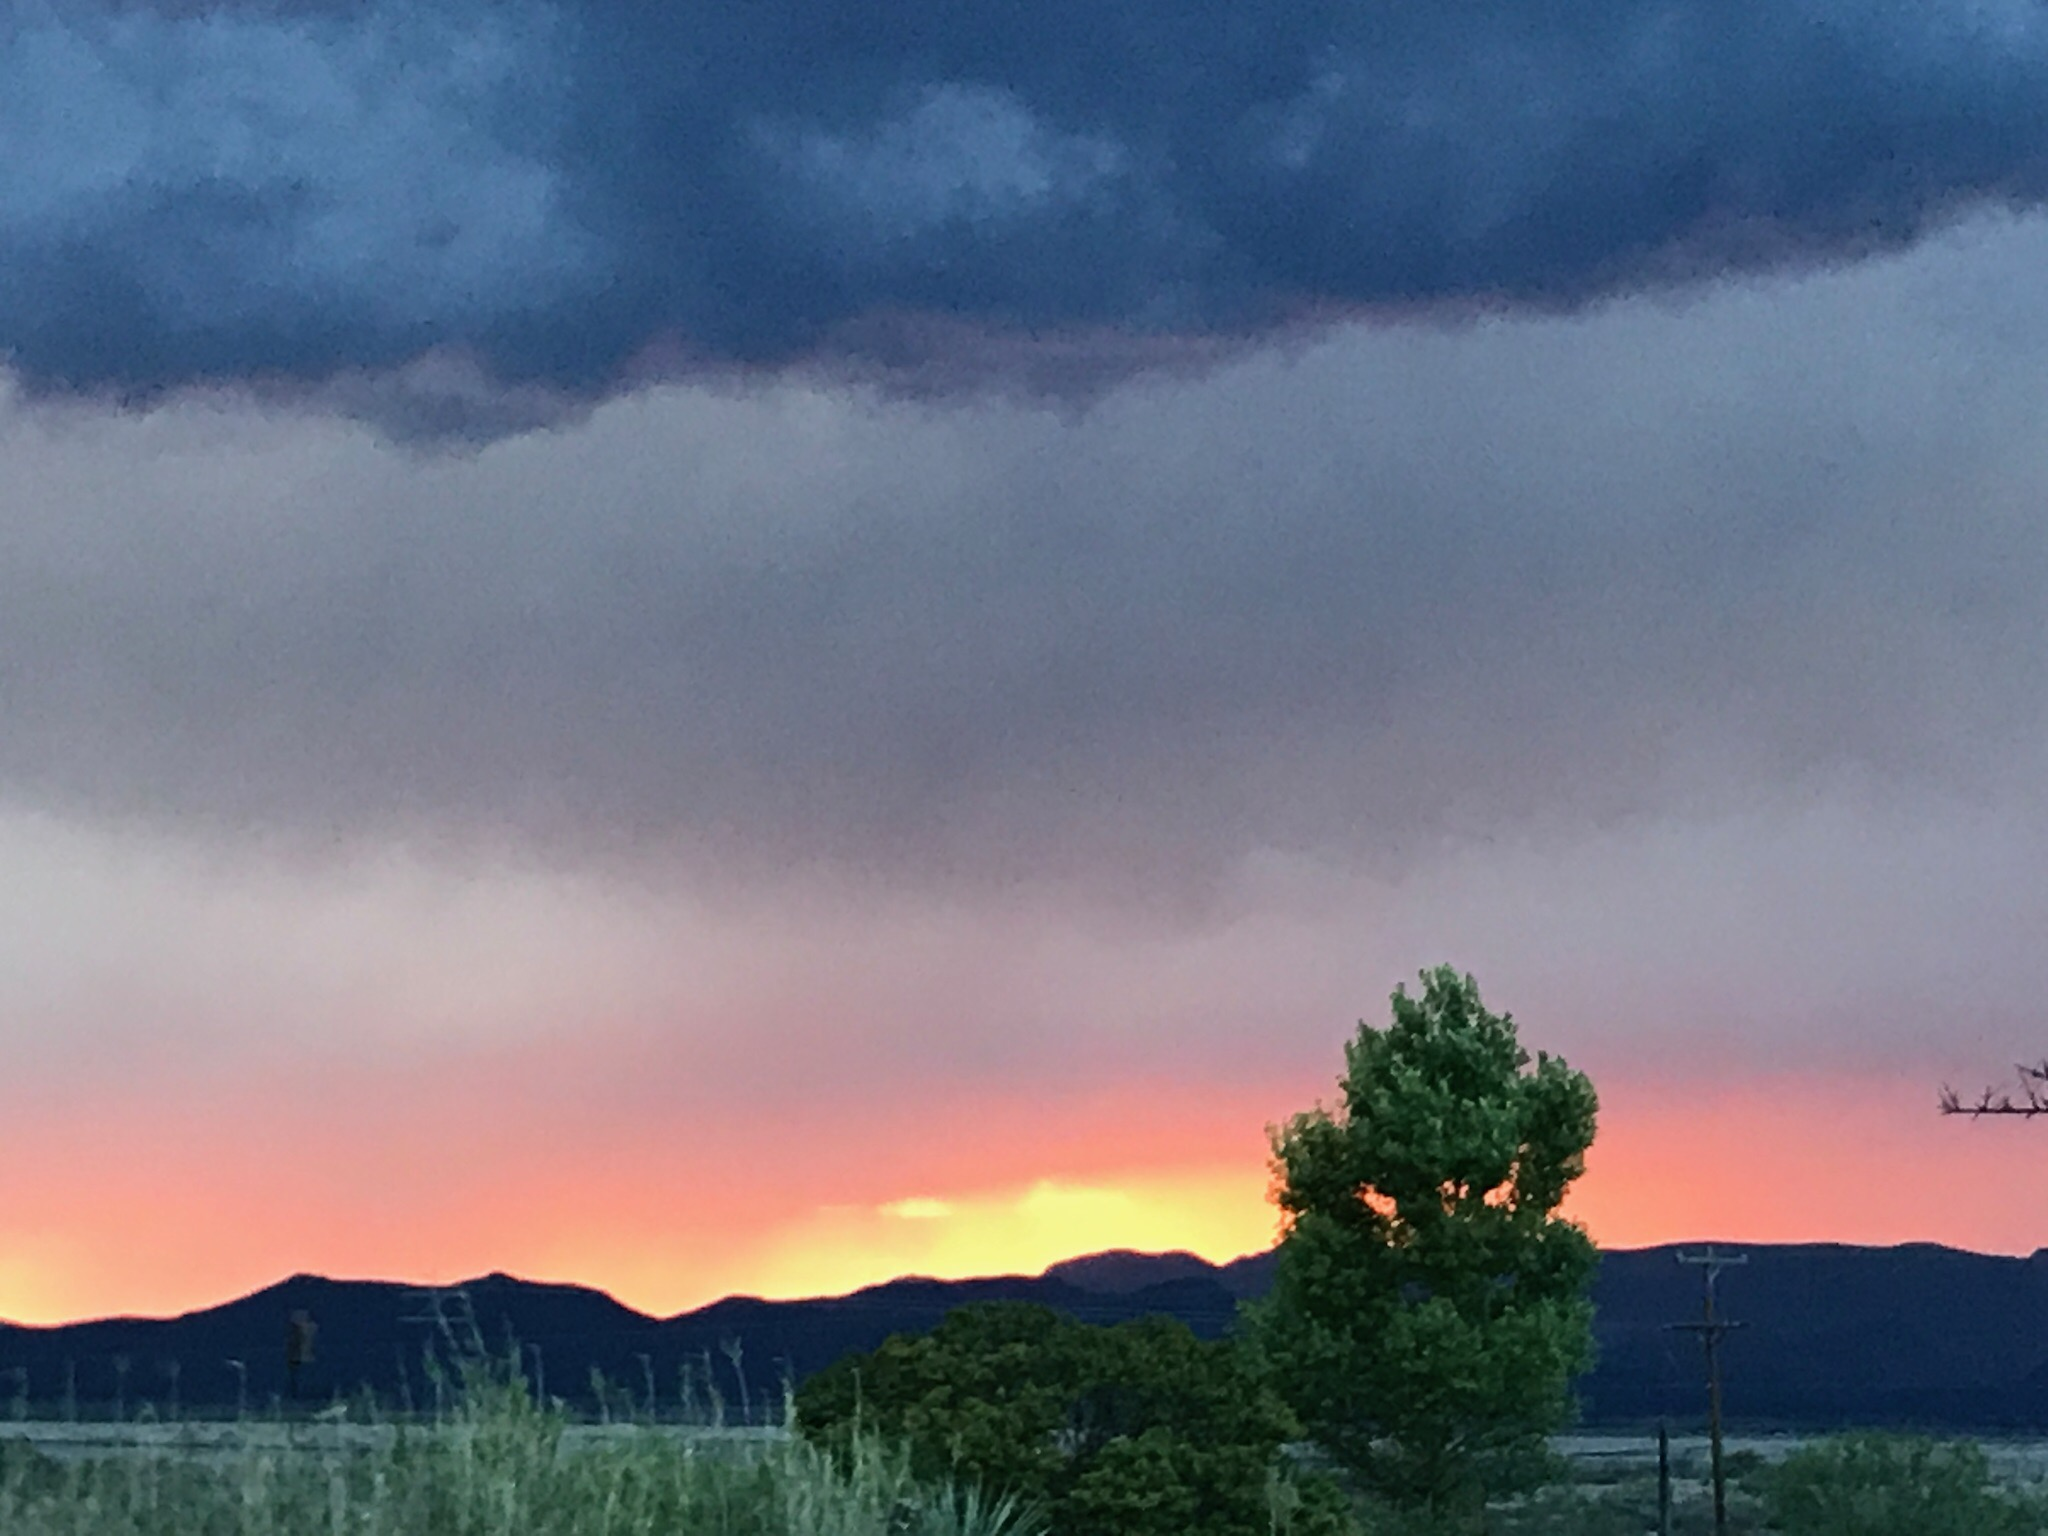 Storm Clouds Moving In Layers of Color and Intensity.